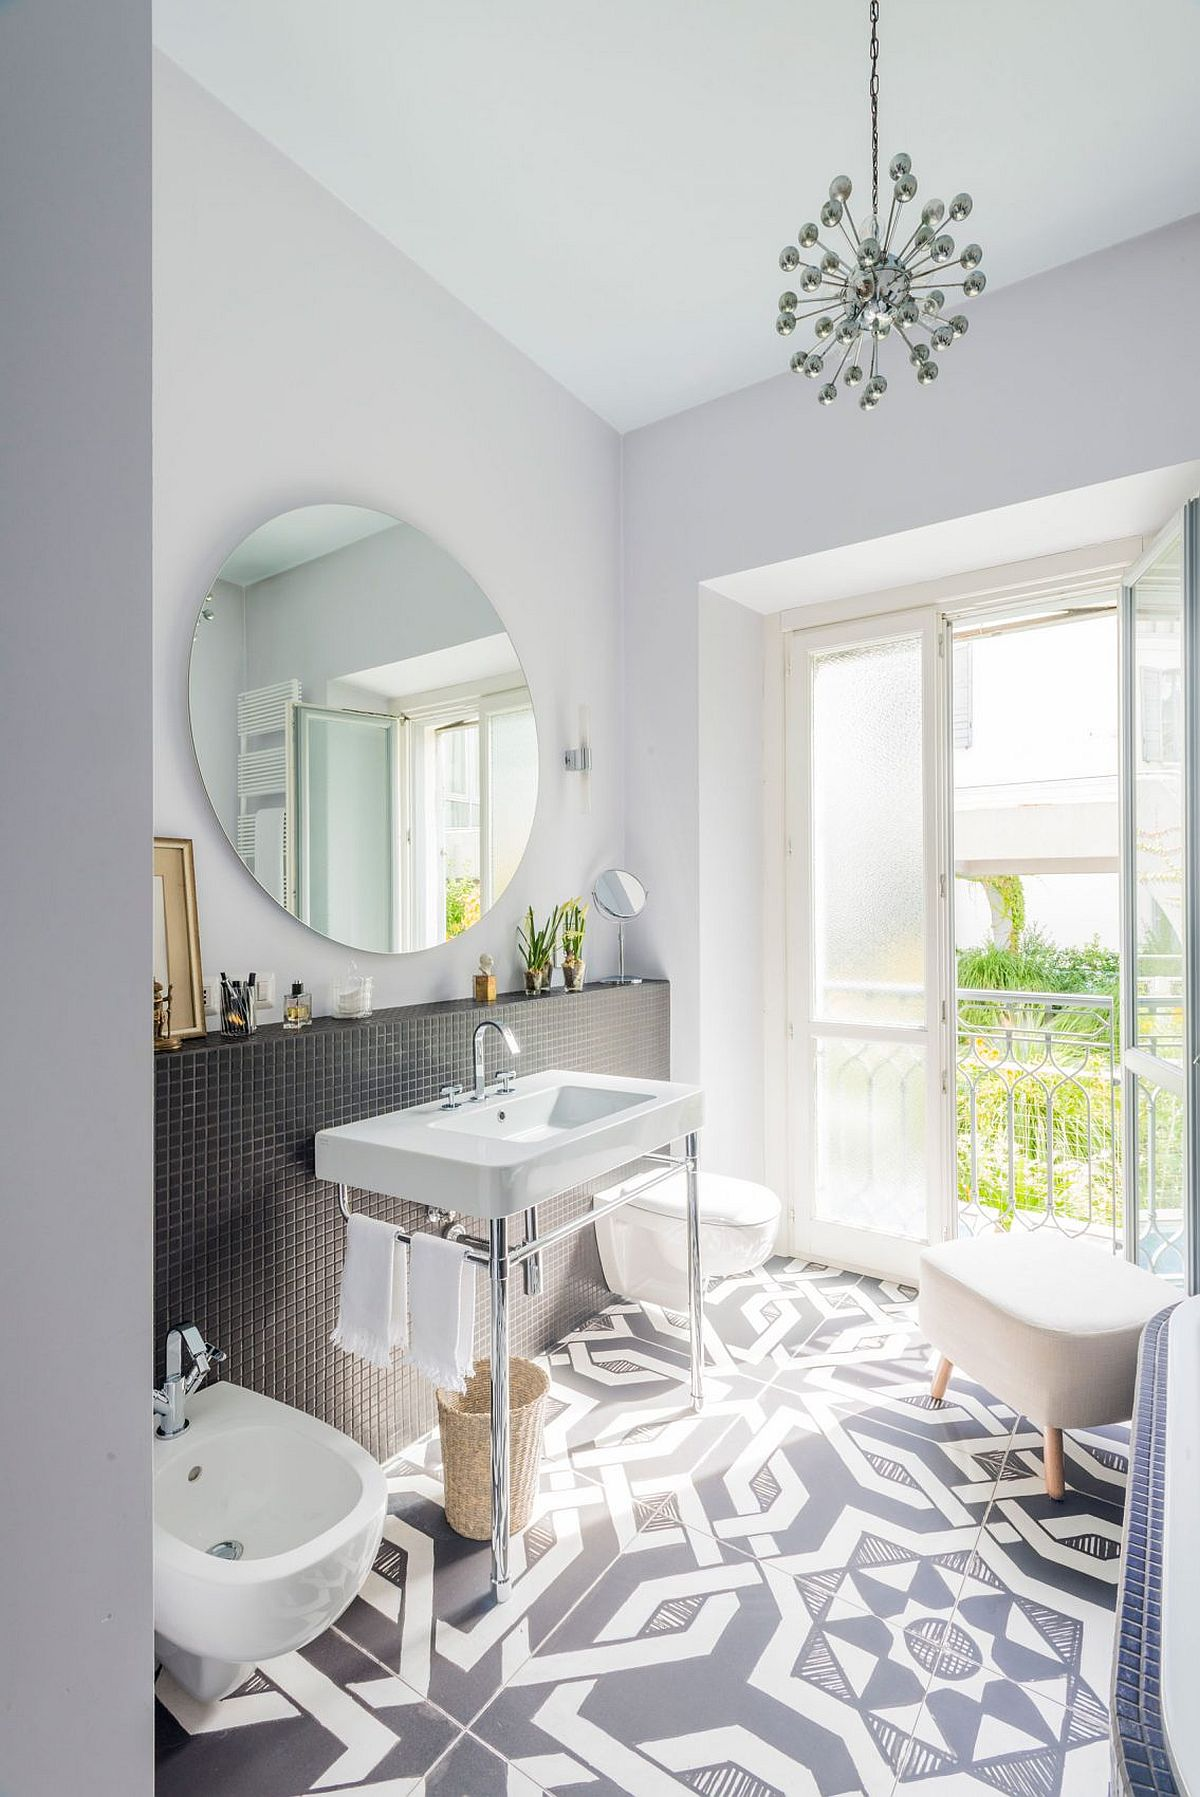 Floor tiles add geostyle to the small bathroom